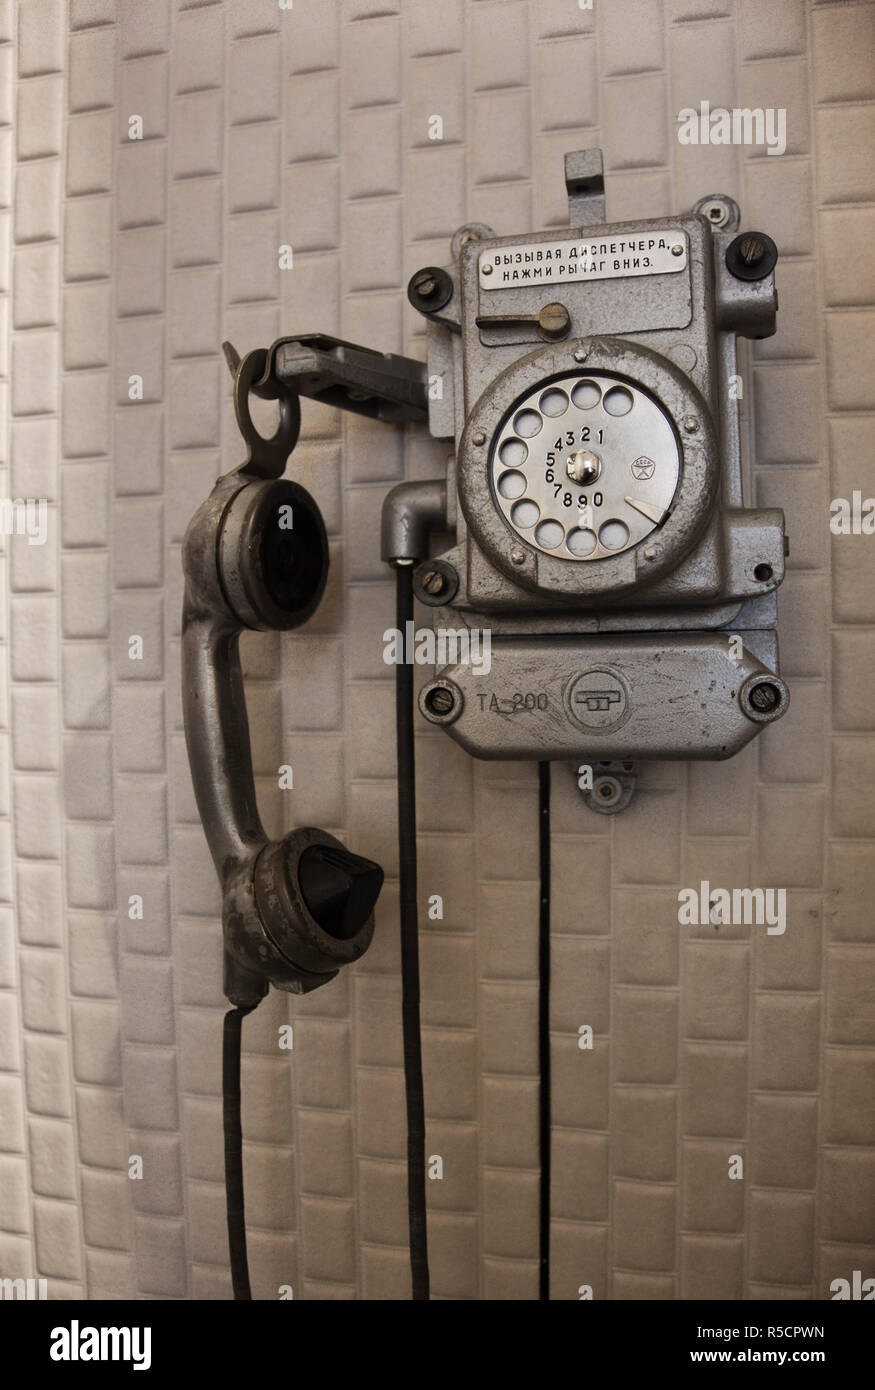 Lithuania, Vilnius, Museum of Genocide Victims, former KGB headquarters, prison telephone - Stock Image